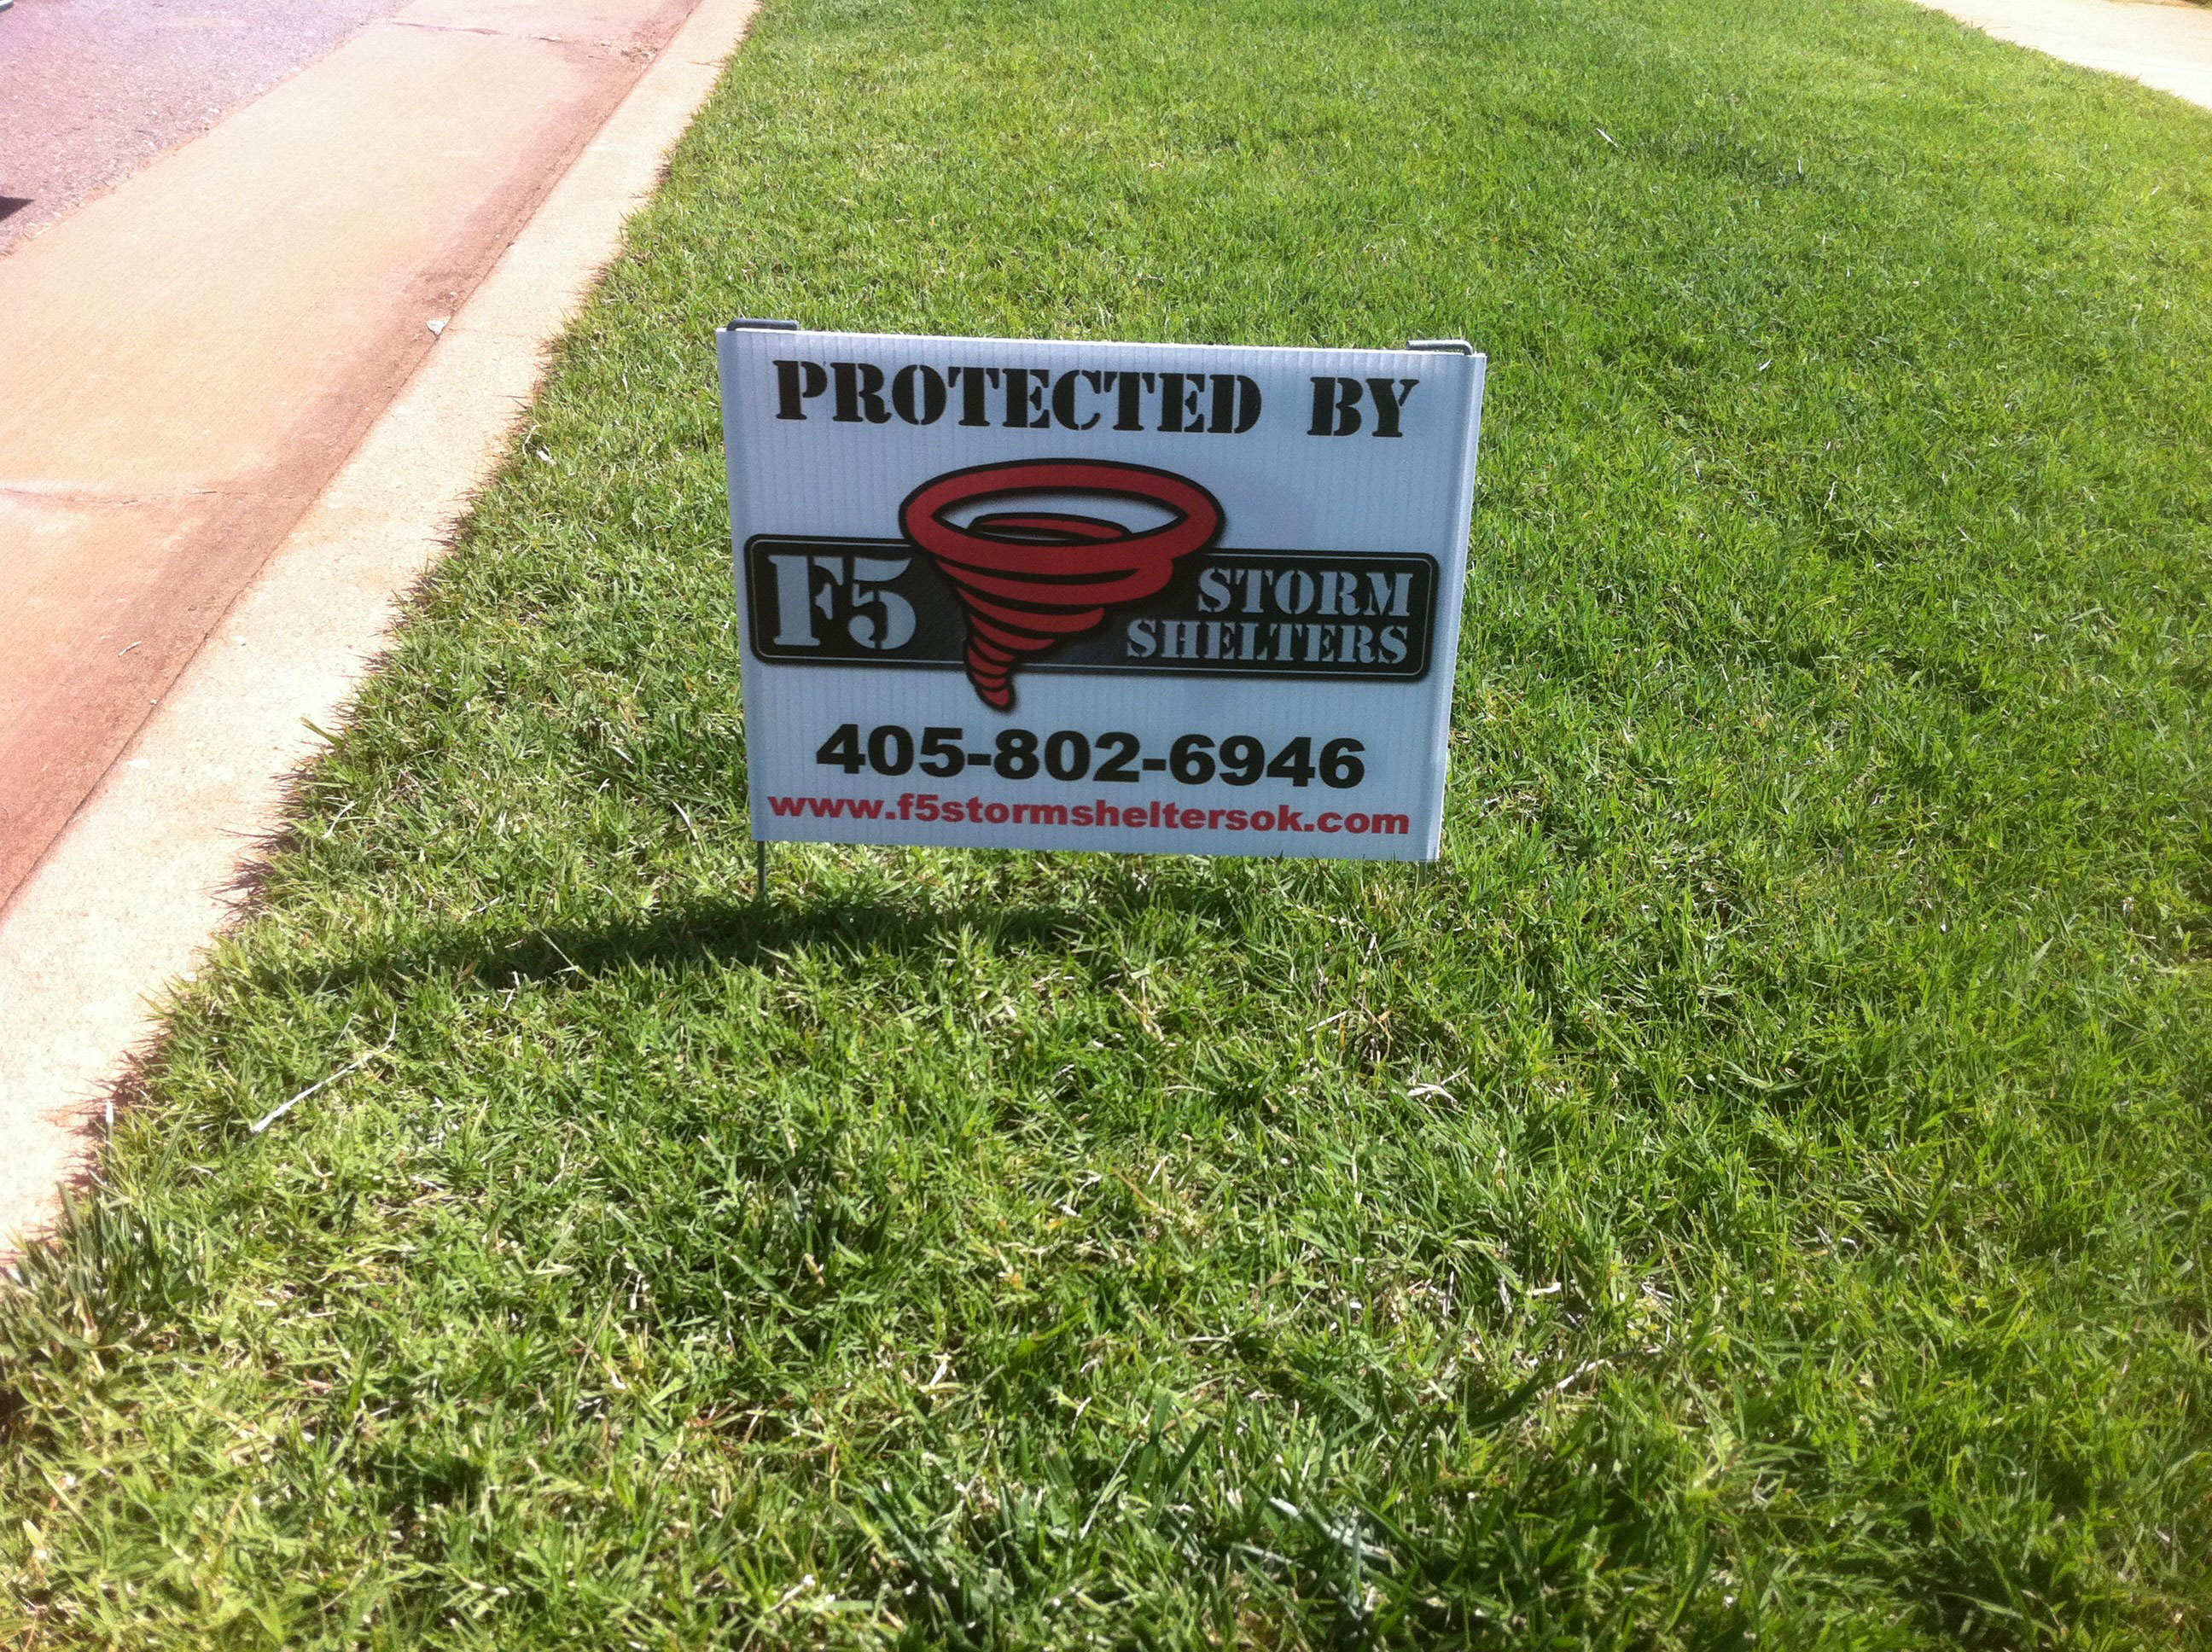 Will an F5 Storm Shelter Increase My Home's Value?